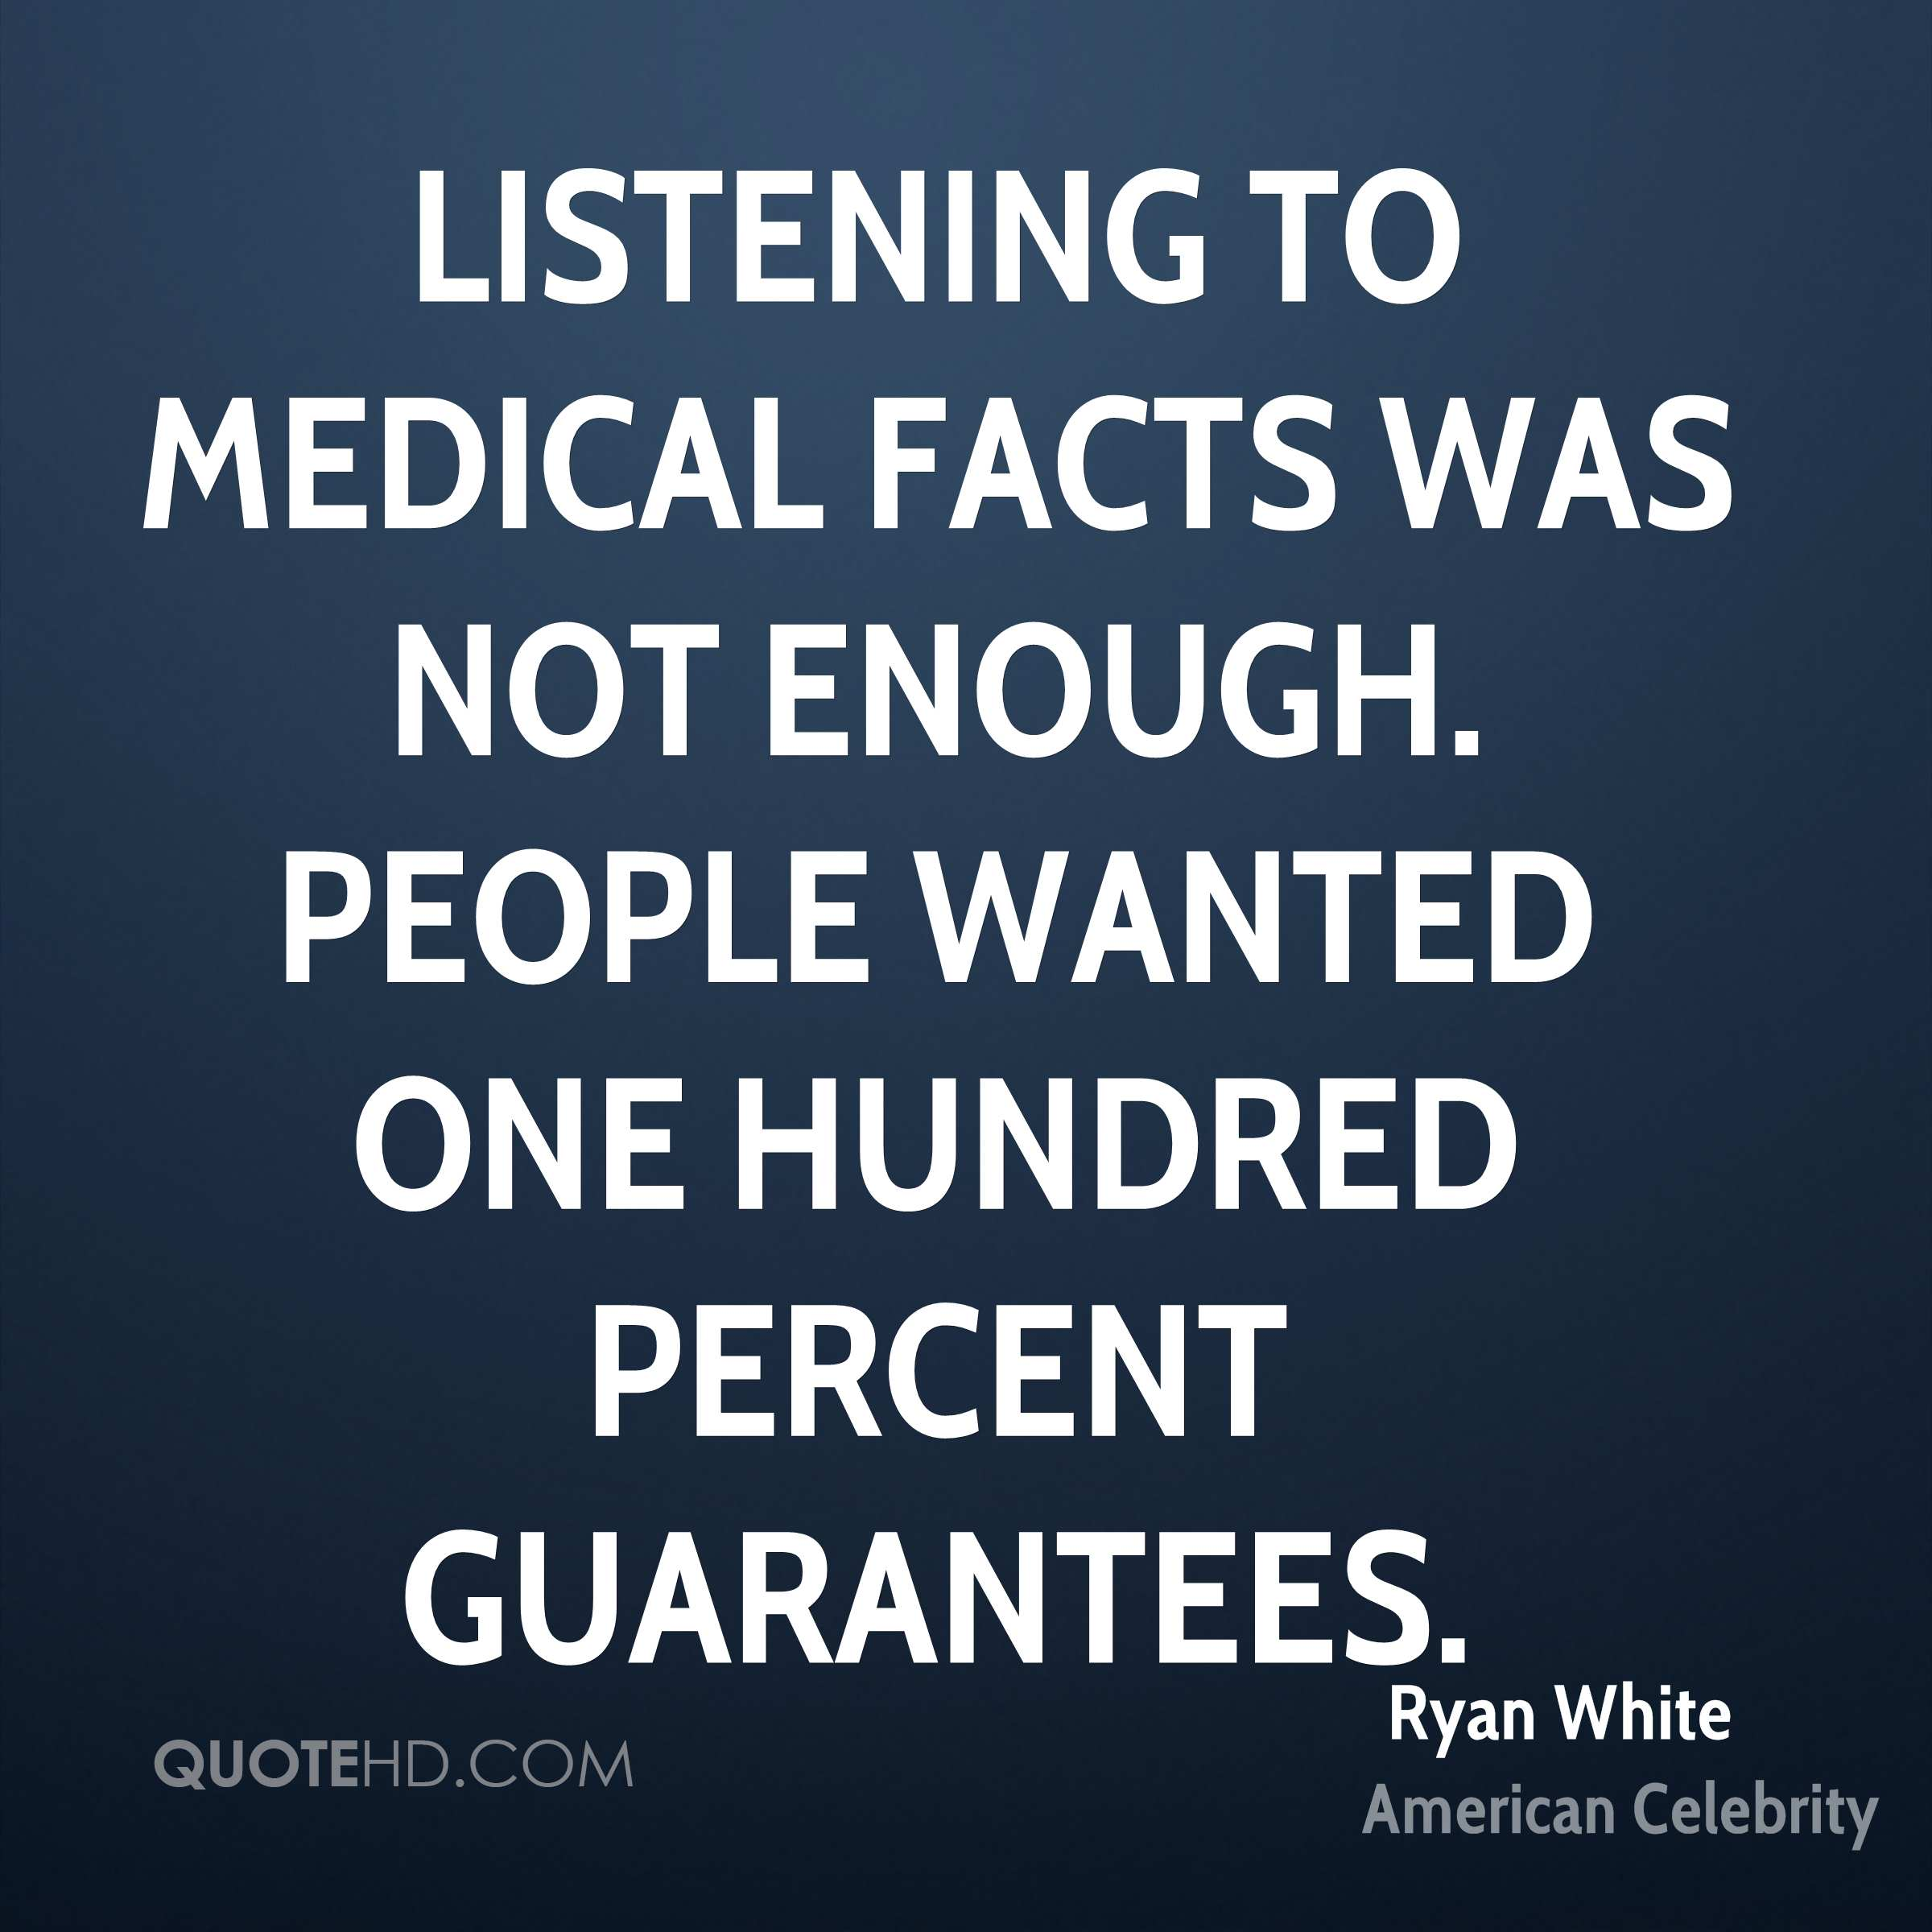 Listening to medical facts was not enough. People wanted one hundred percent guarantees.